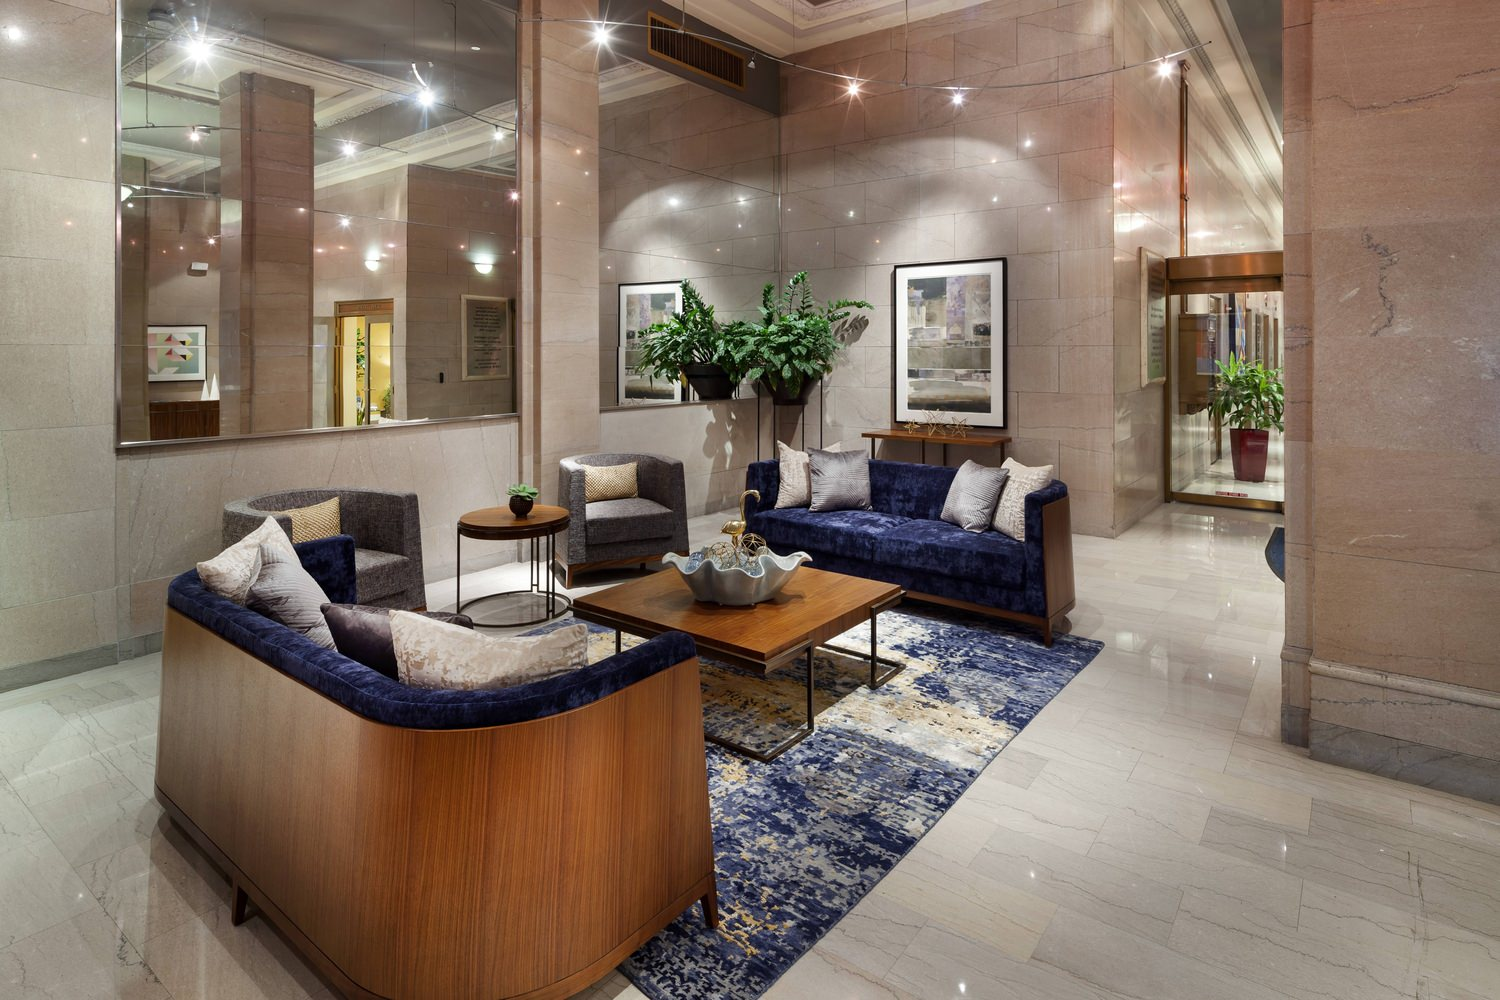 Lobby of a building that has tables and couches in the middle of it with a large mirror on the wall.